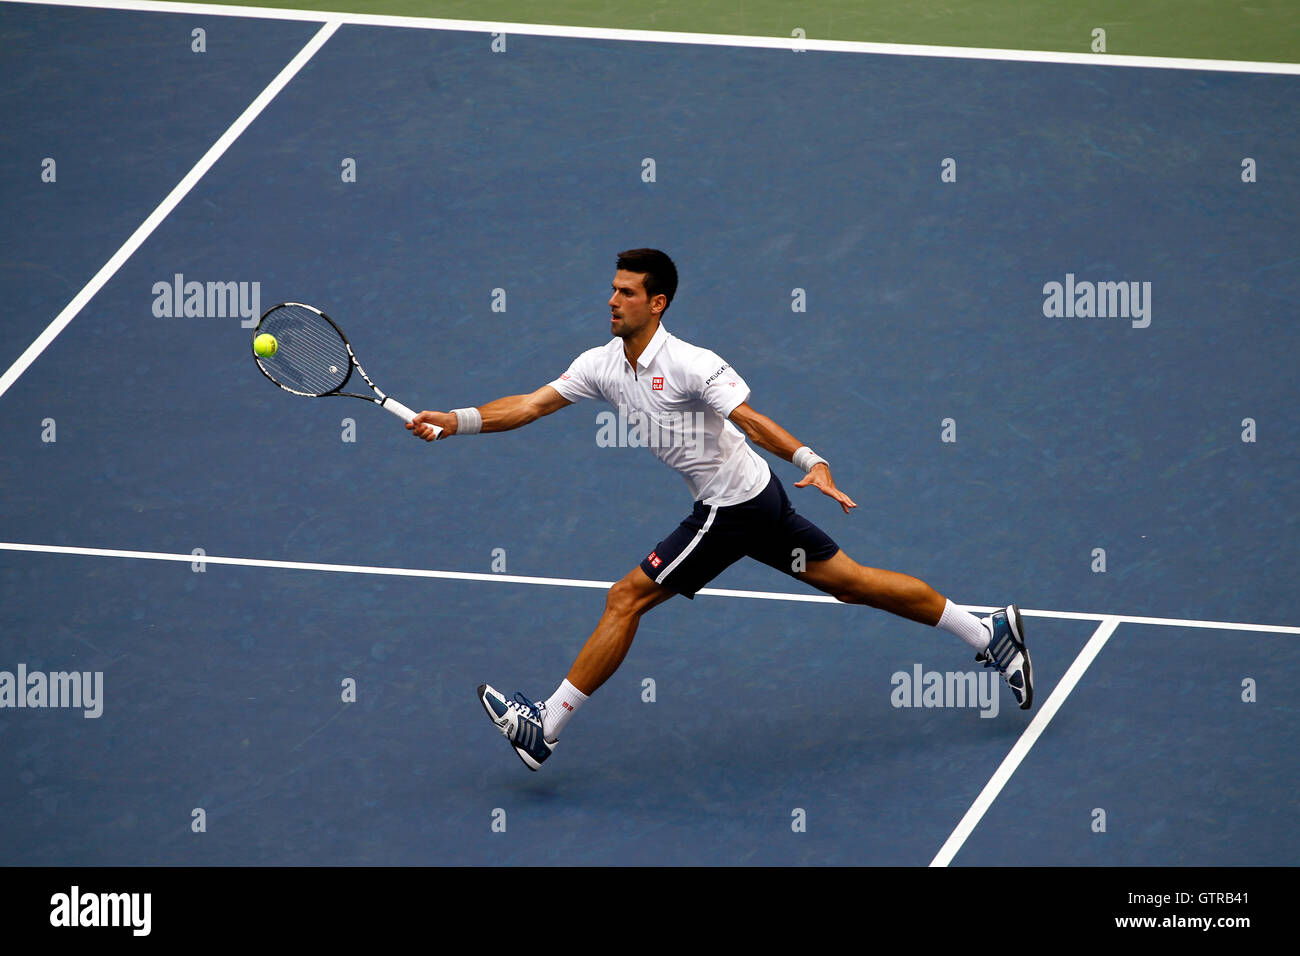 New York, United States. 09th Sep, 2016. Novak Djokovic during his semi final match against Gael Monfils of France - Stock Image